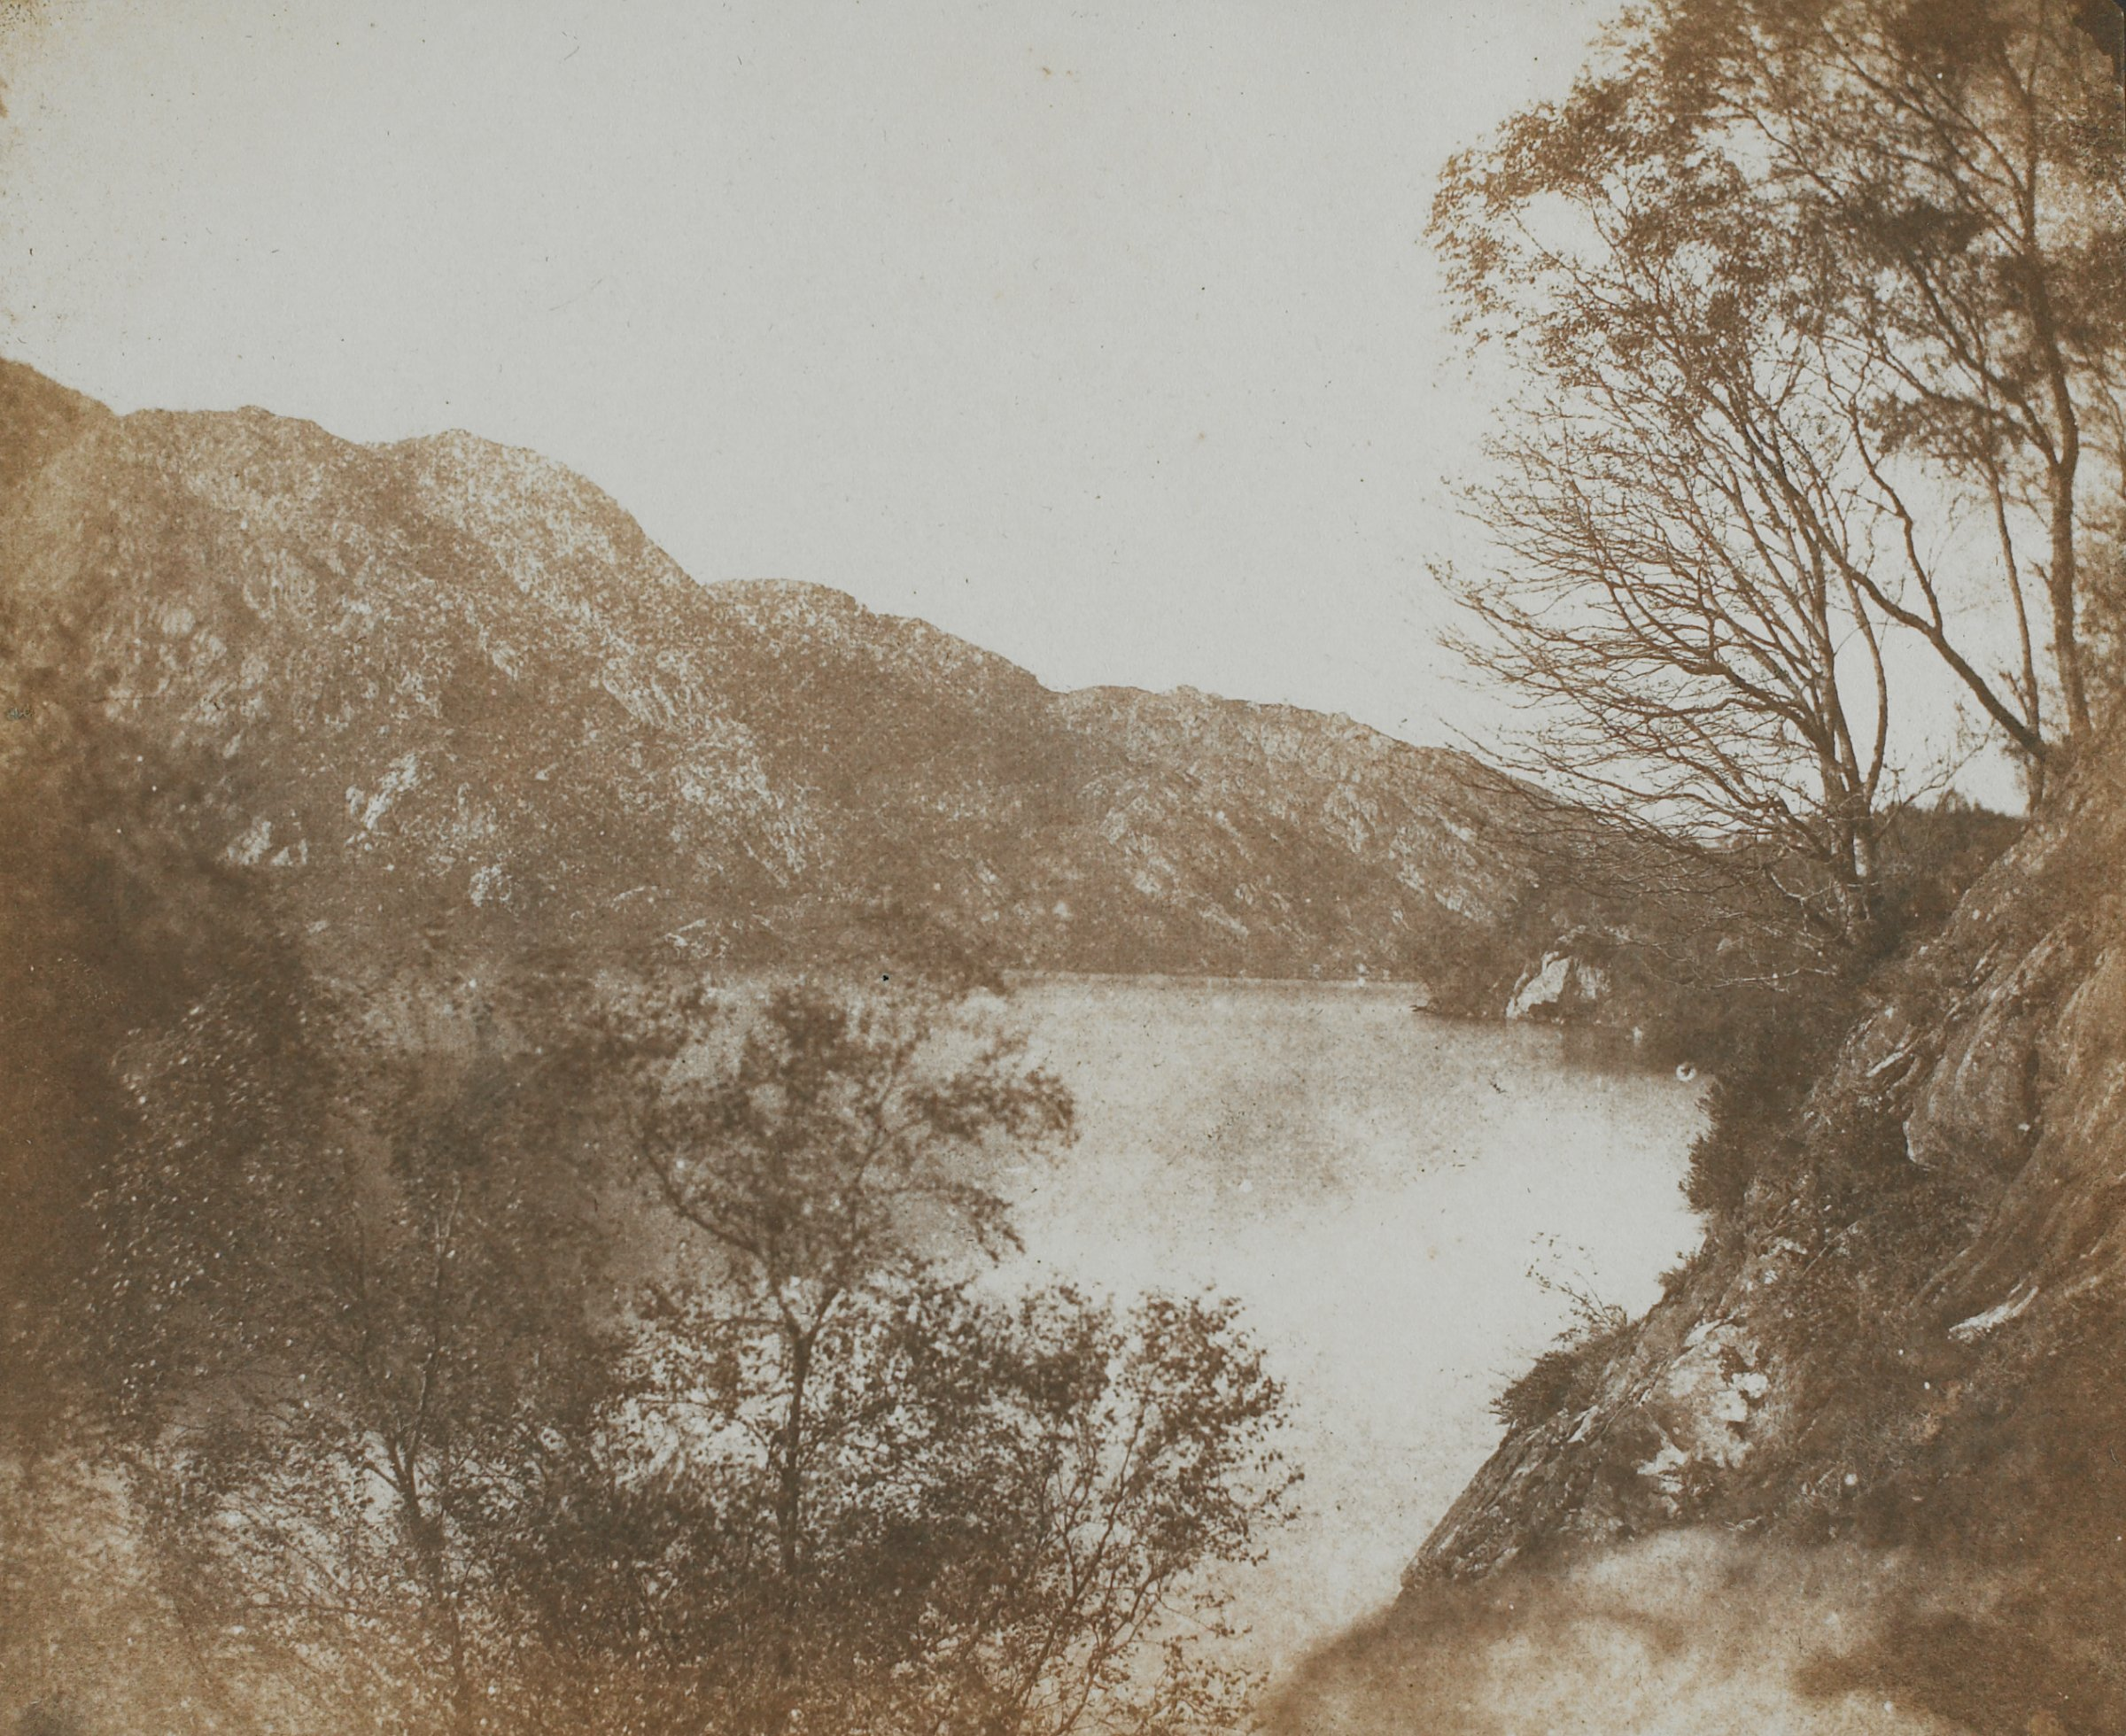 This salt print provides a picturesque view of Loch Katrine, Scotland, looking to the base of Ben Venue with woodland in the foreground.